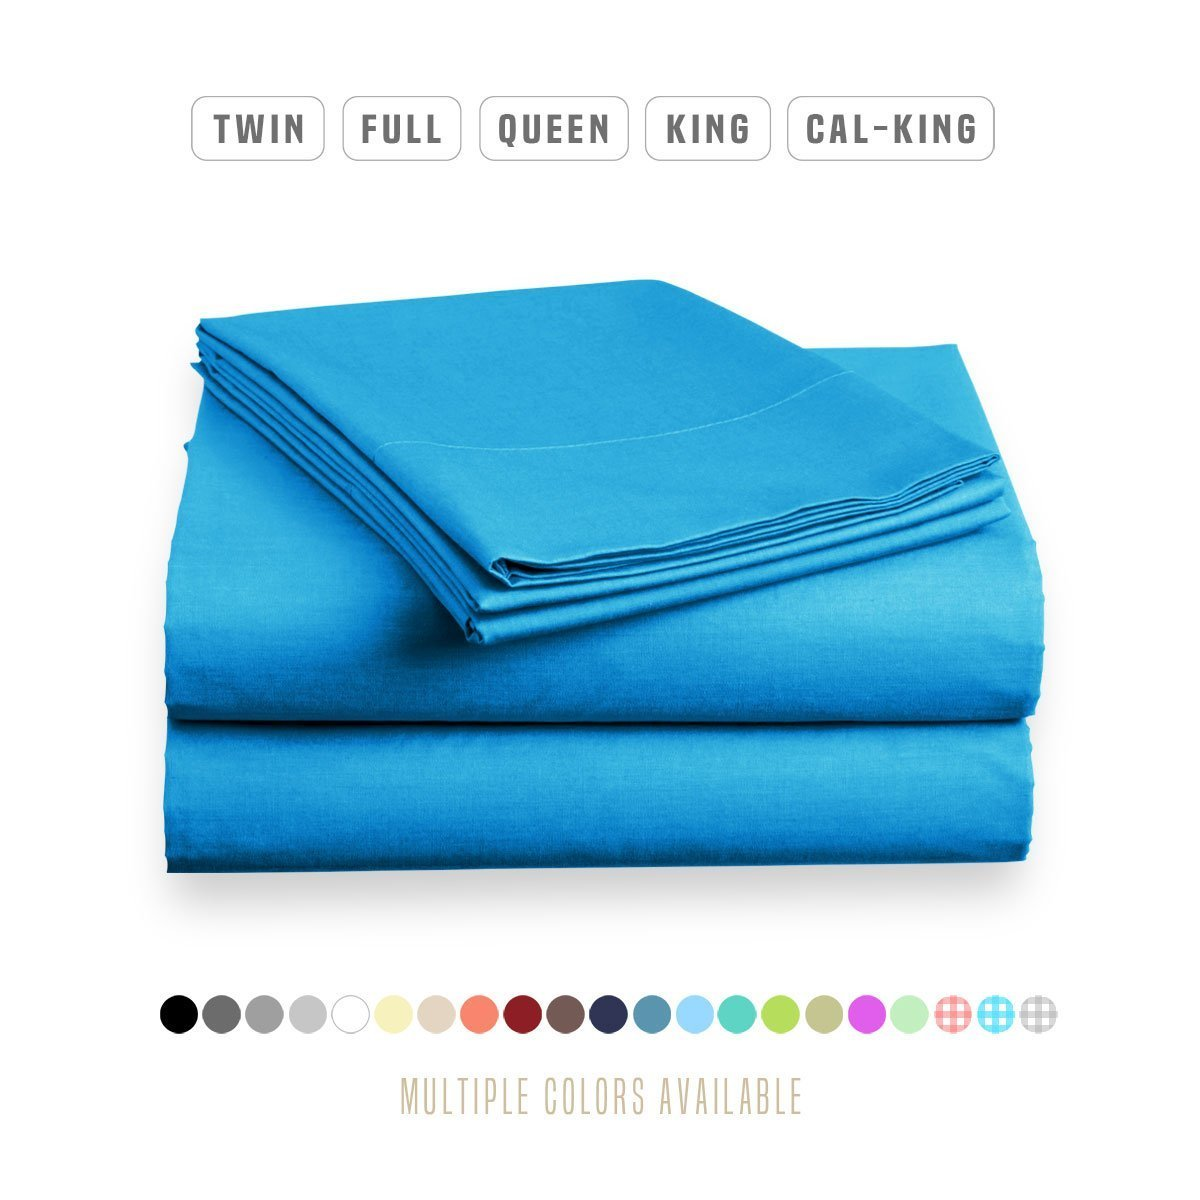 Luxe Bedding Bed Sheet Set - Brushed Microfiber 2000 Bedding King Blue